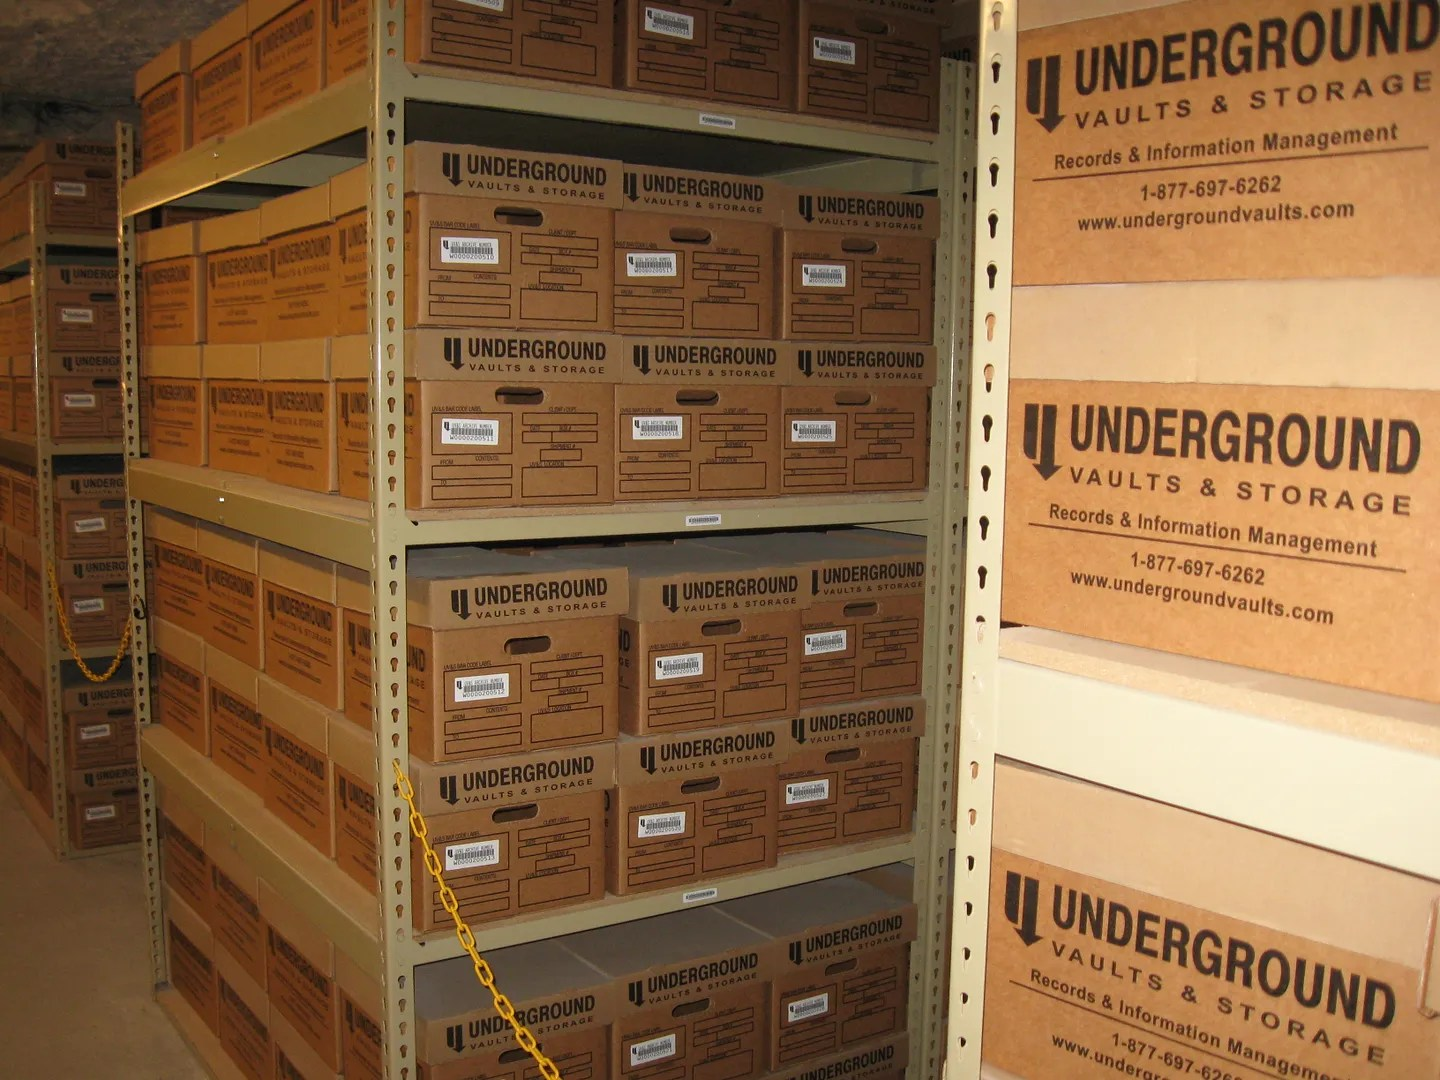 Undergrounds Vaults and Storage, Hutchinson, Kansas